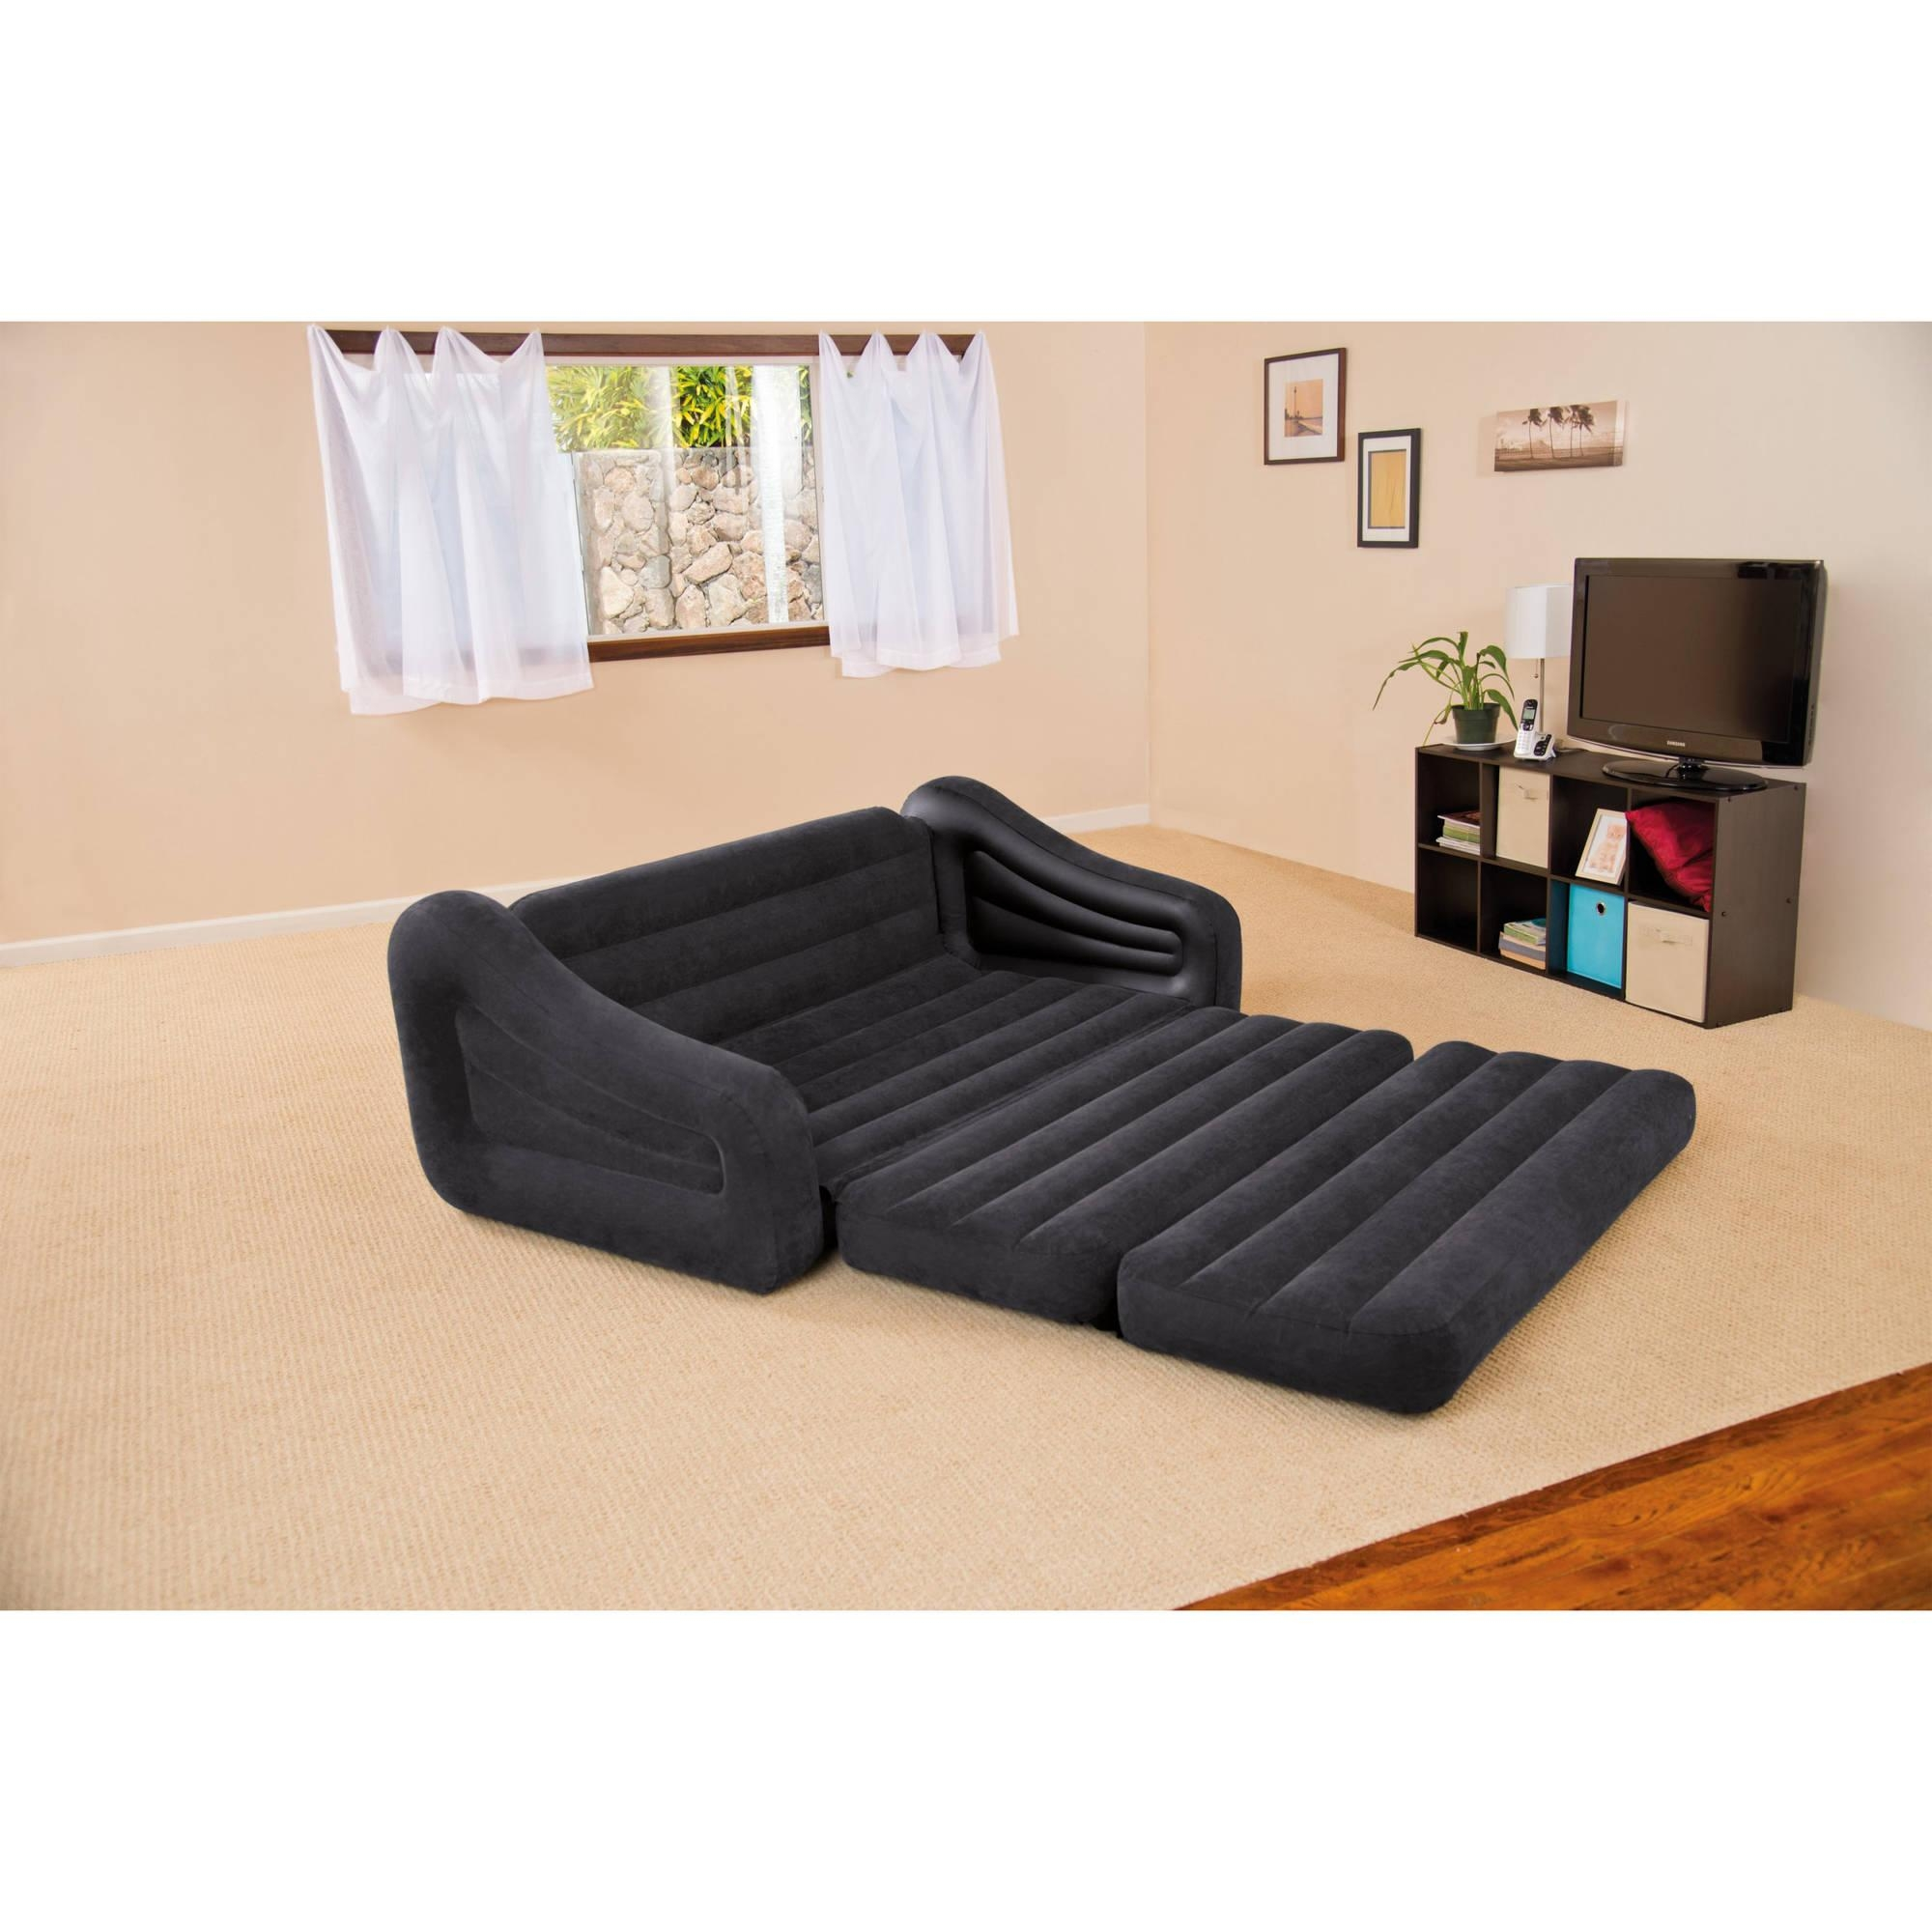 intex inflatable sofa kmart maze half moon set 20 top pull out chairs ideas